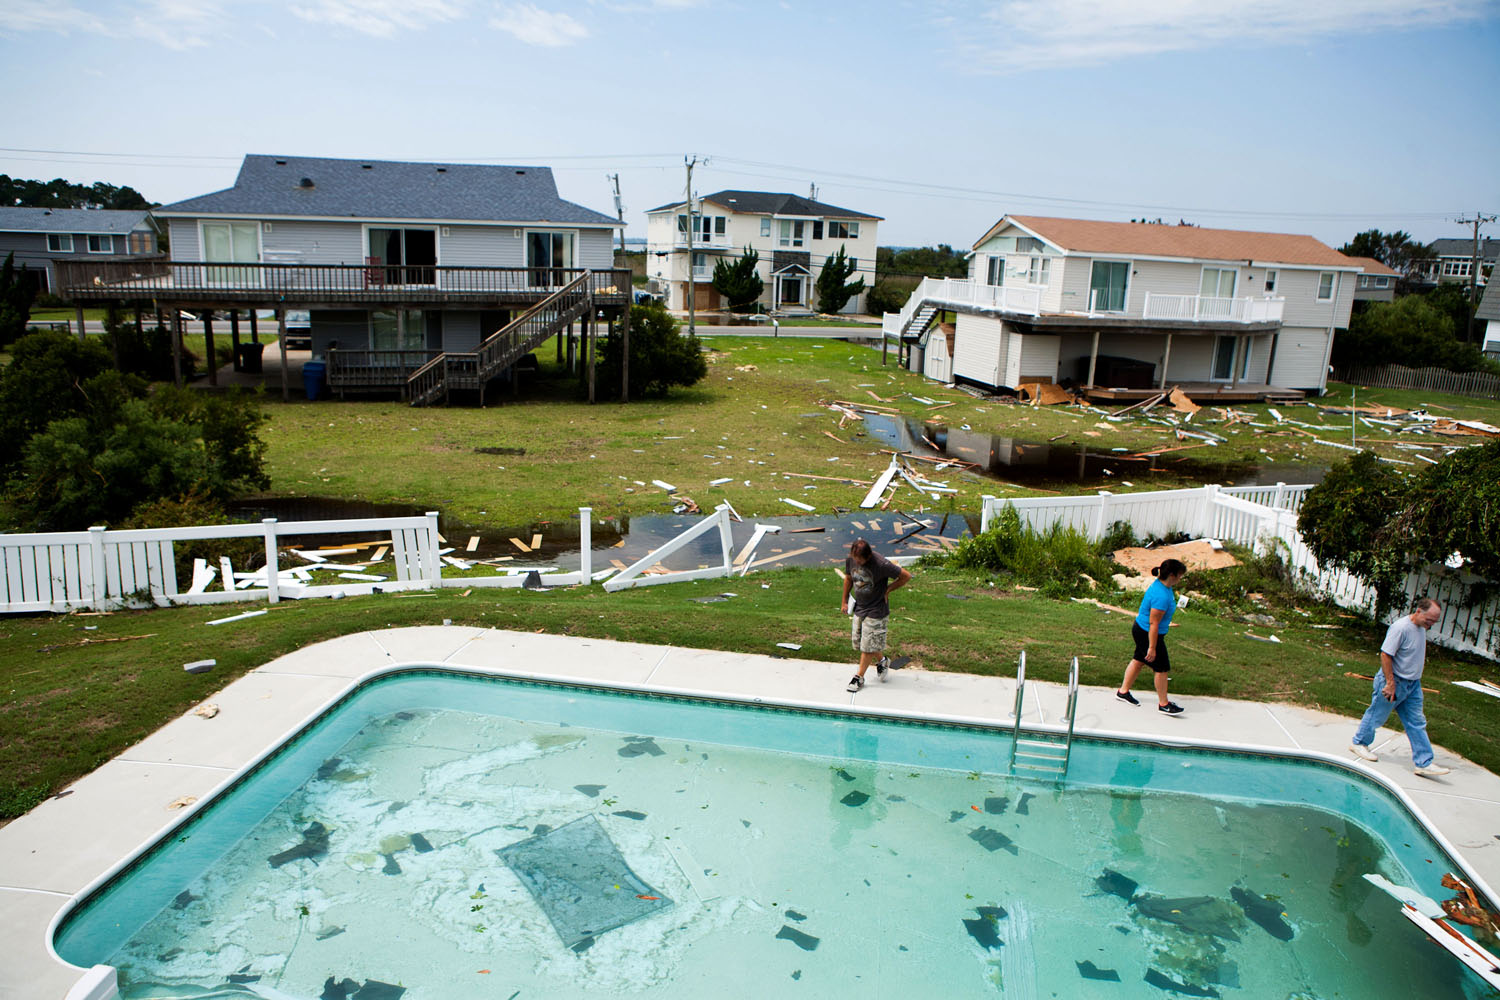 August 28, 2011, Virginia Beach, VA. Shane Argabright, left, a general contractor, surveys damage to a house belonging to Aileen Black, center, and Reed Black in Sandbridge the day after a tornado spawned by Hurricane Irene passed through the town in Virginia Beach.